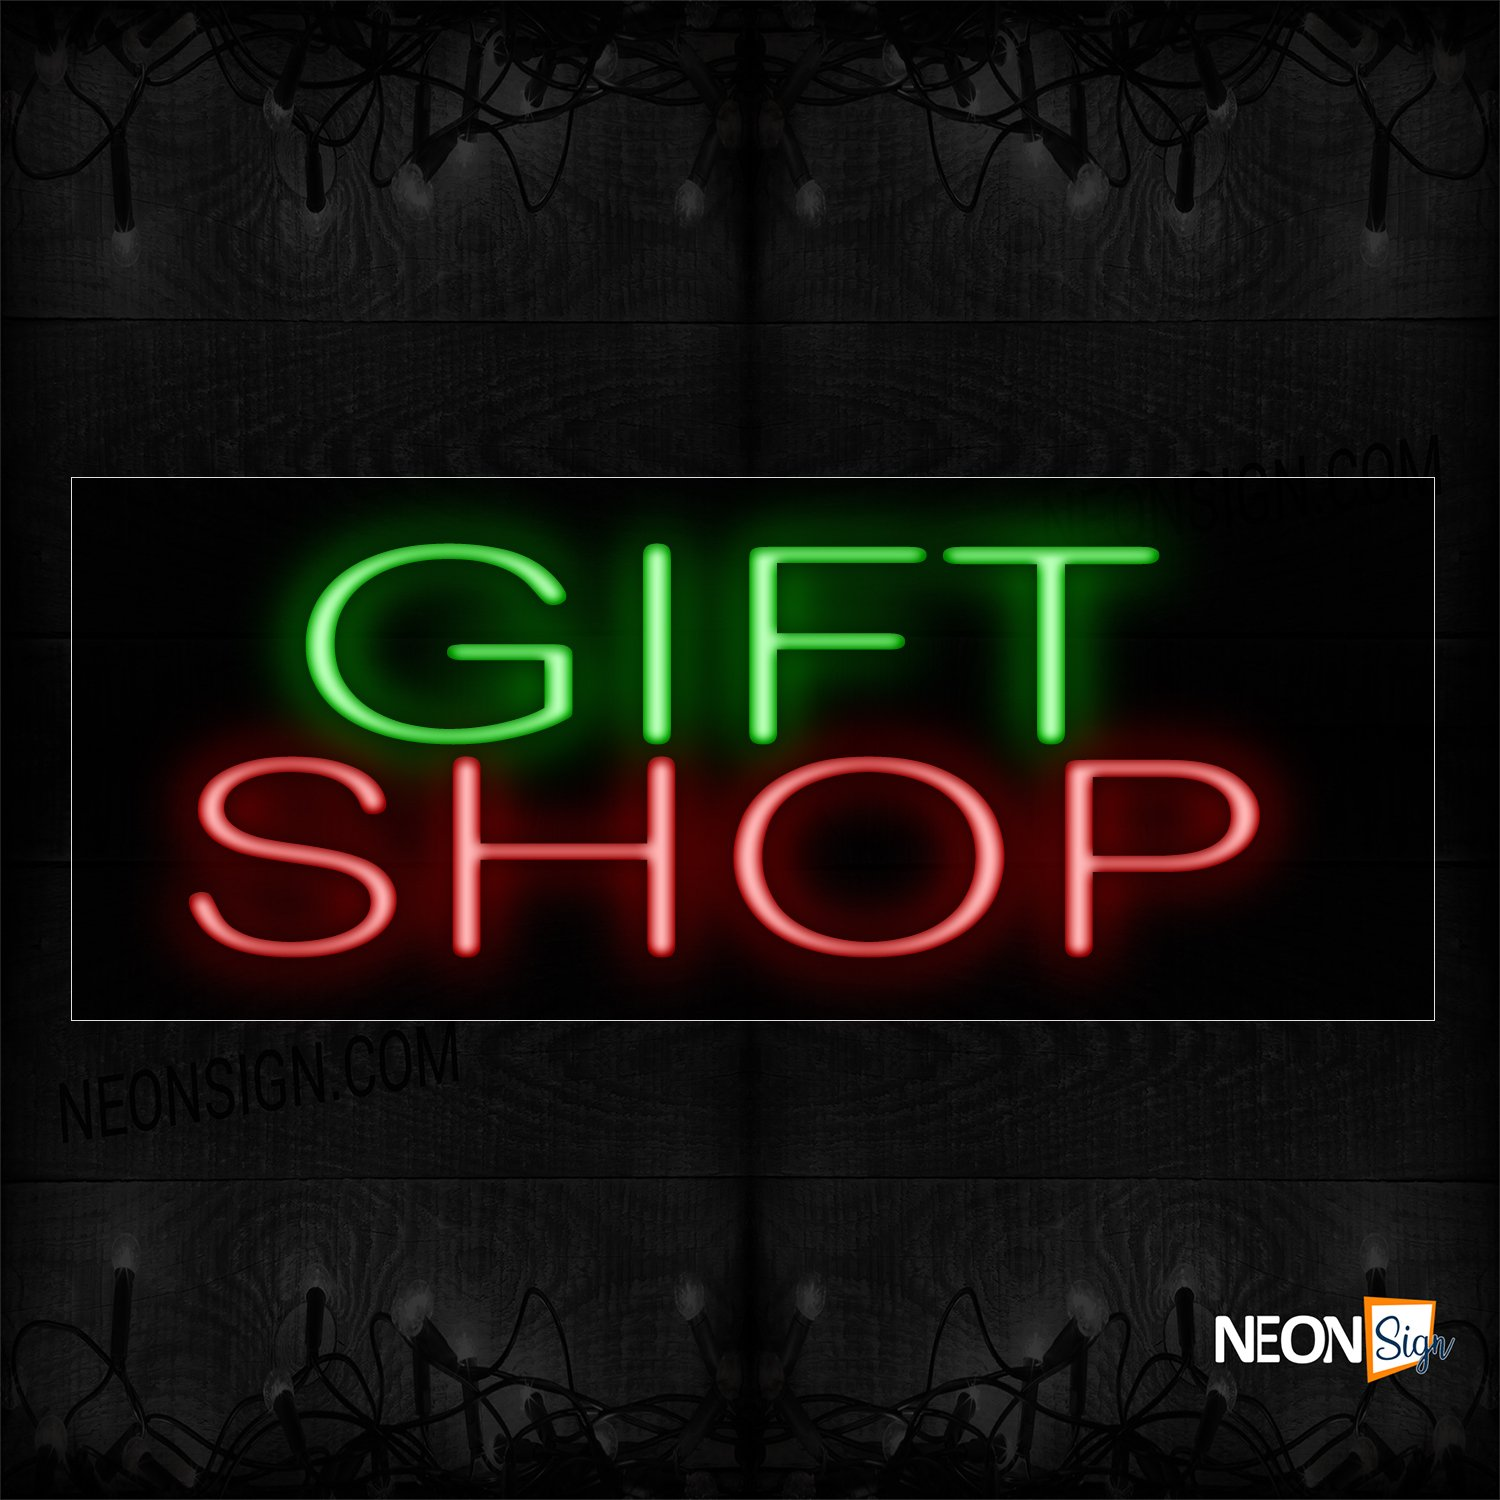 Image of 12371 Gift Shop_10x24 Black Backing